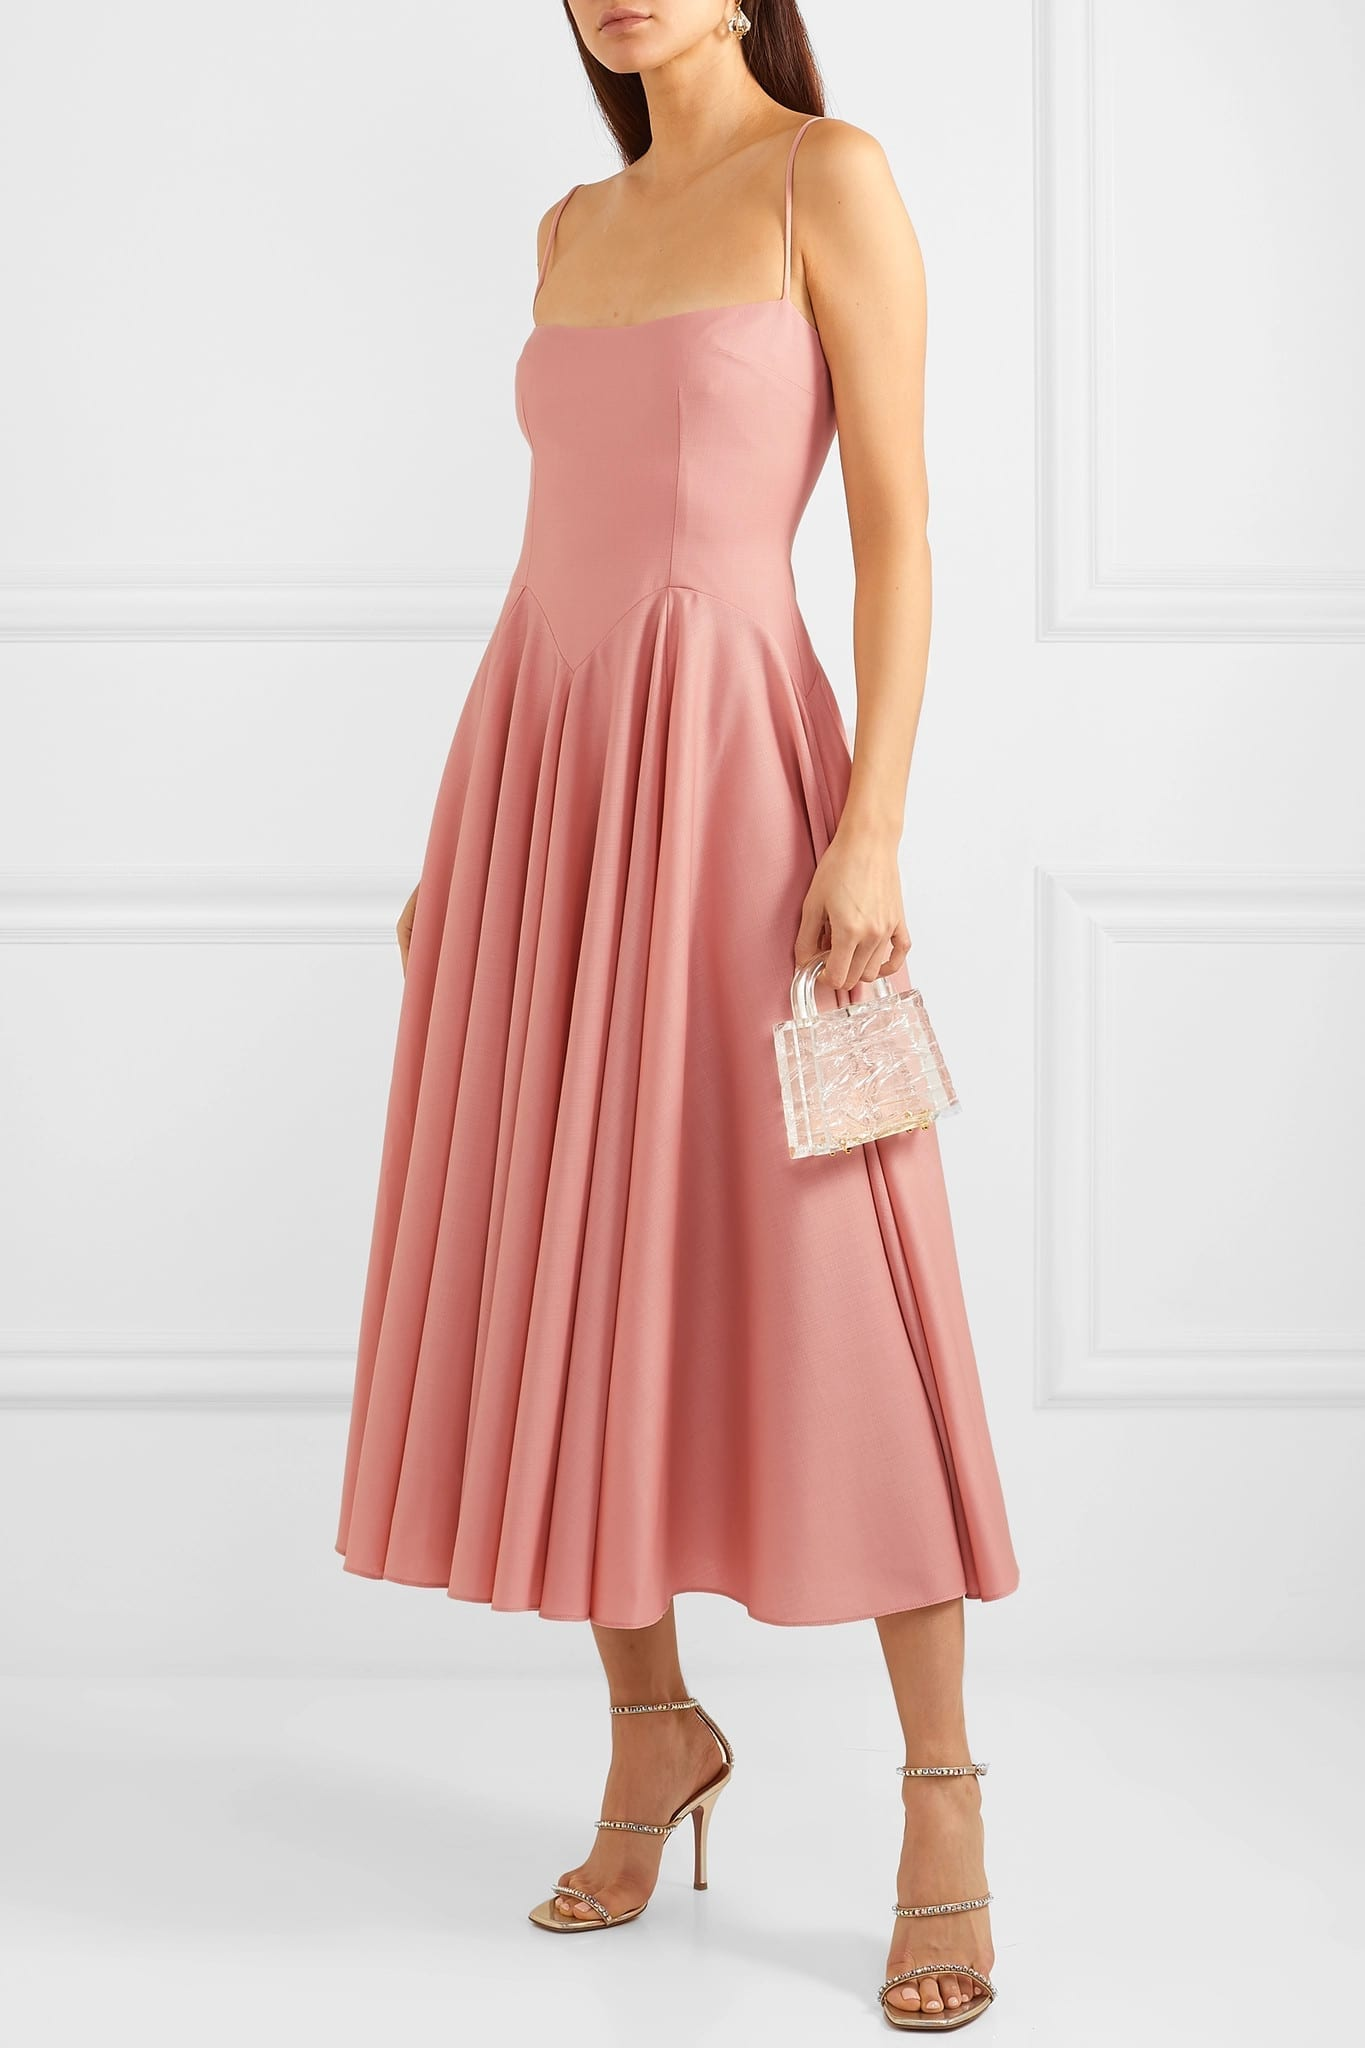 EMILIA WICKSTEAD The Woolmark Company Nico Merino Wool Midi Pink Dress